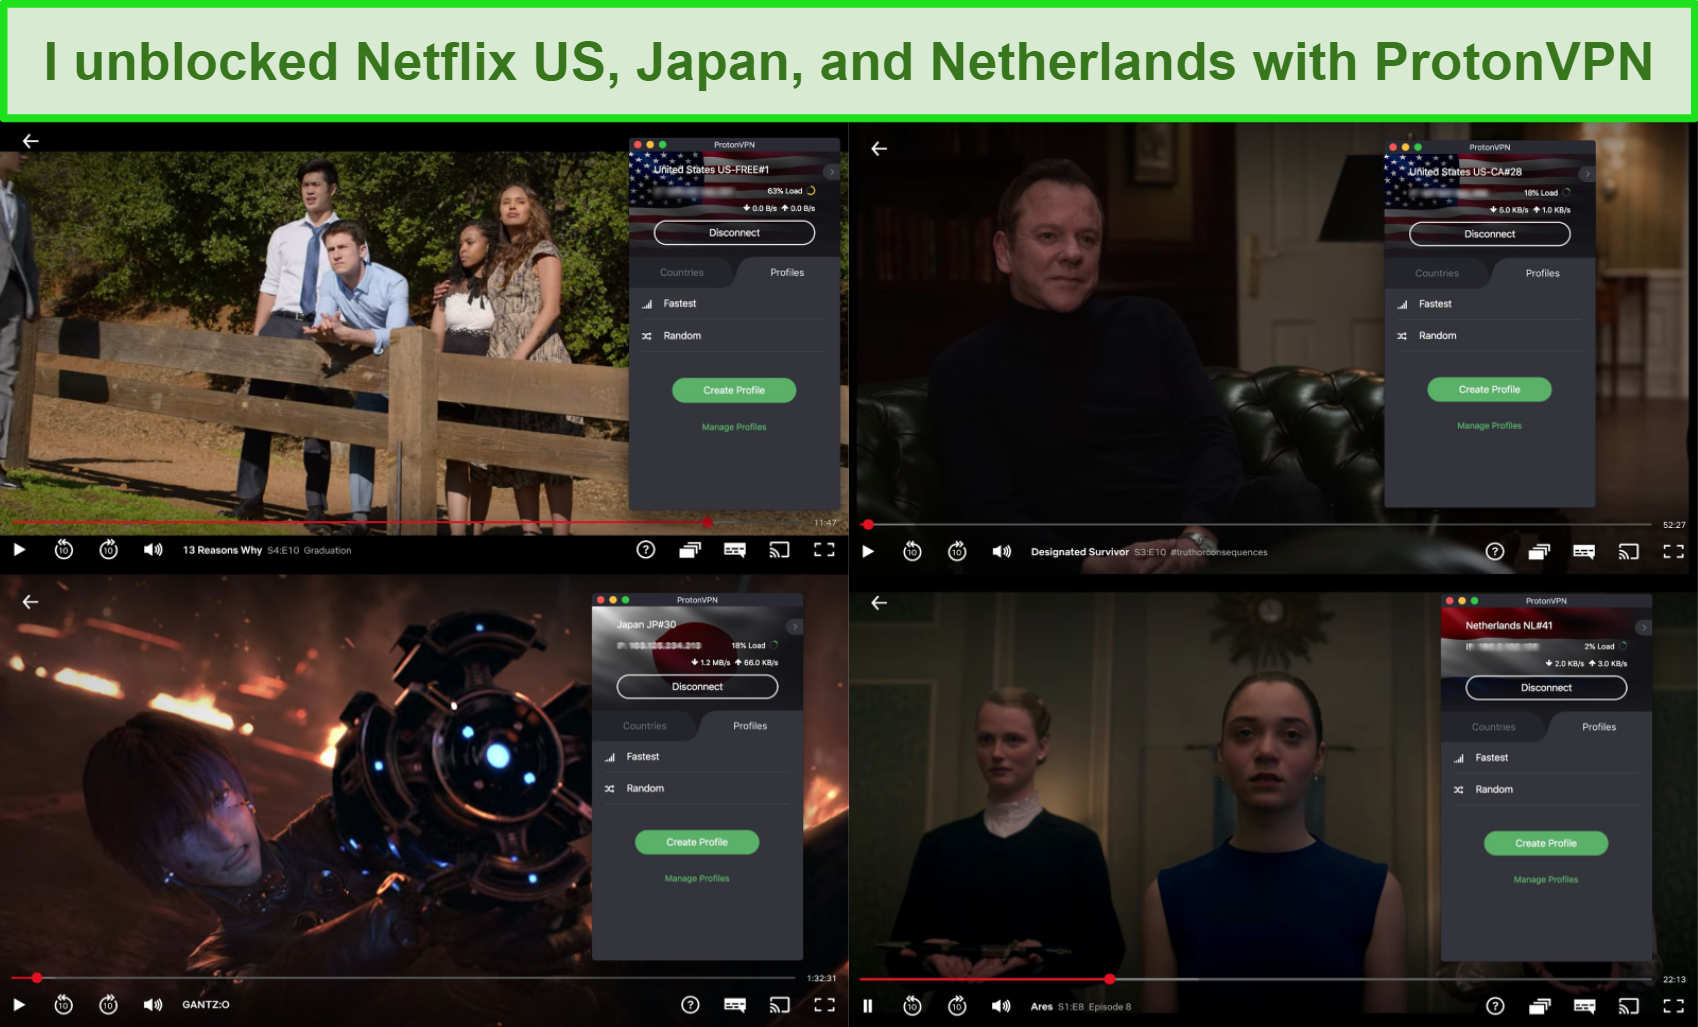 Screenshots of ProtonVPN accessing Netflix US, Japan, and Netherlands